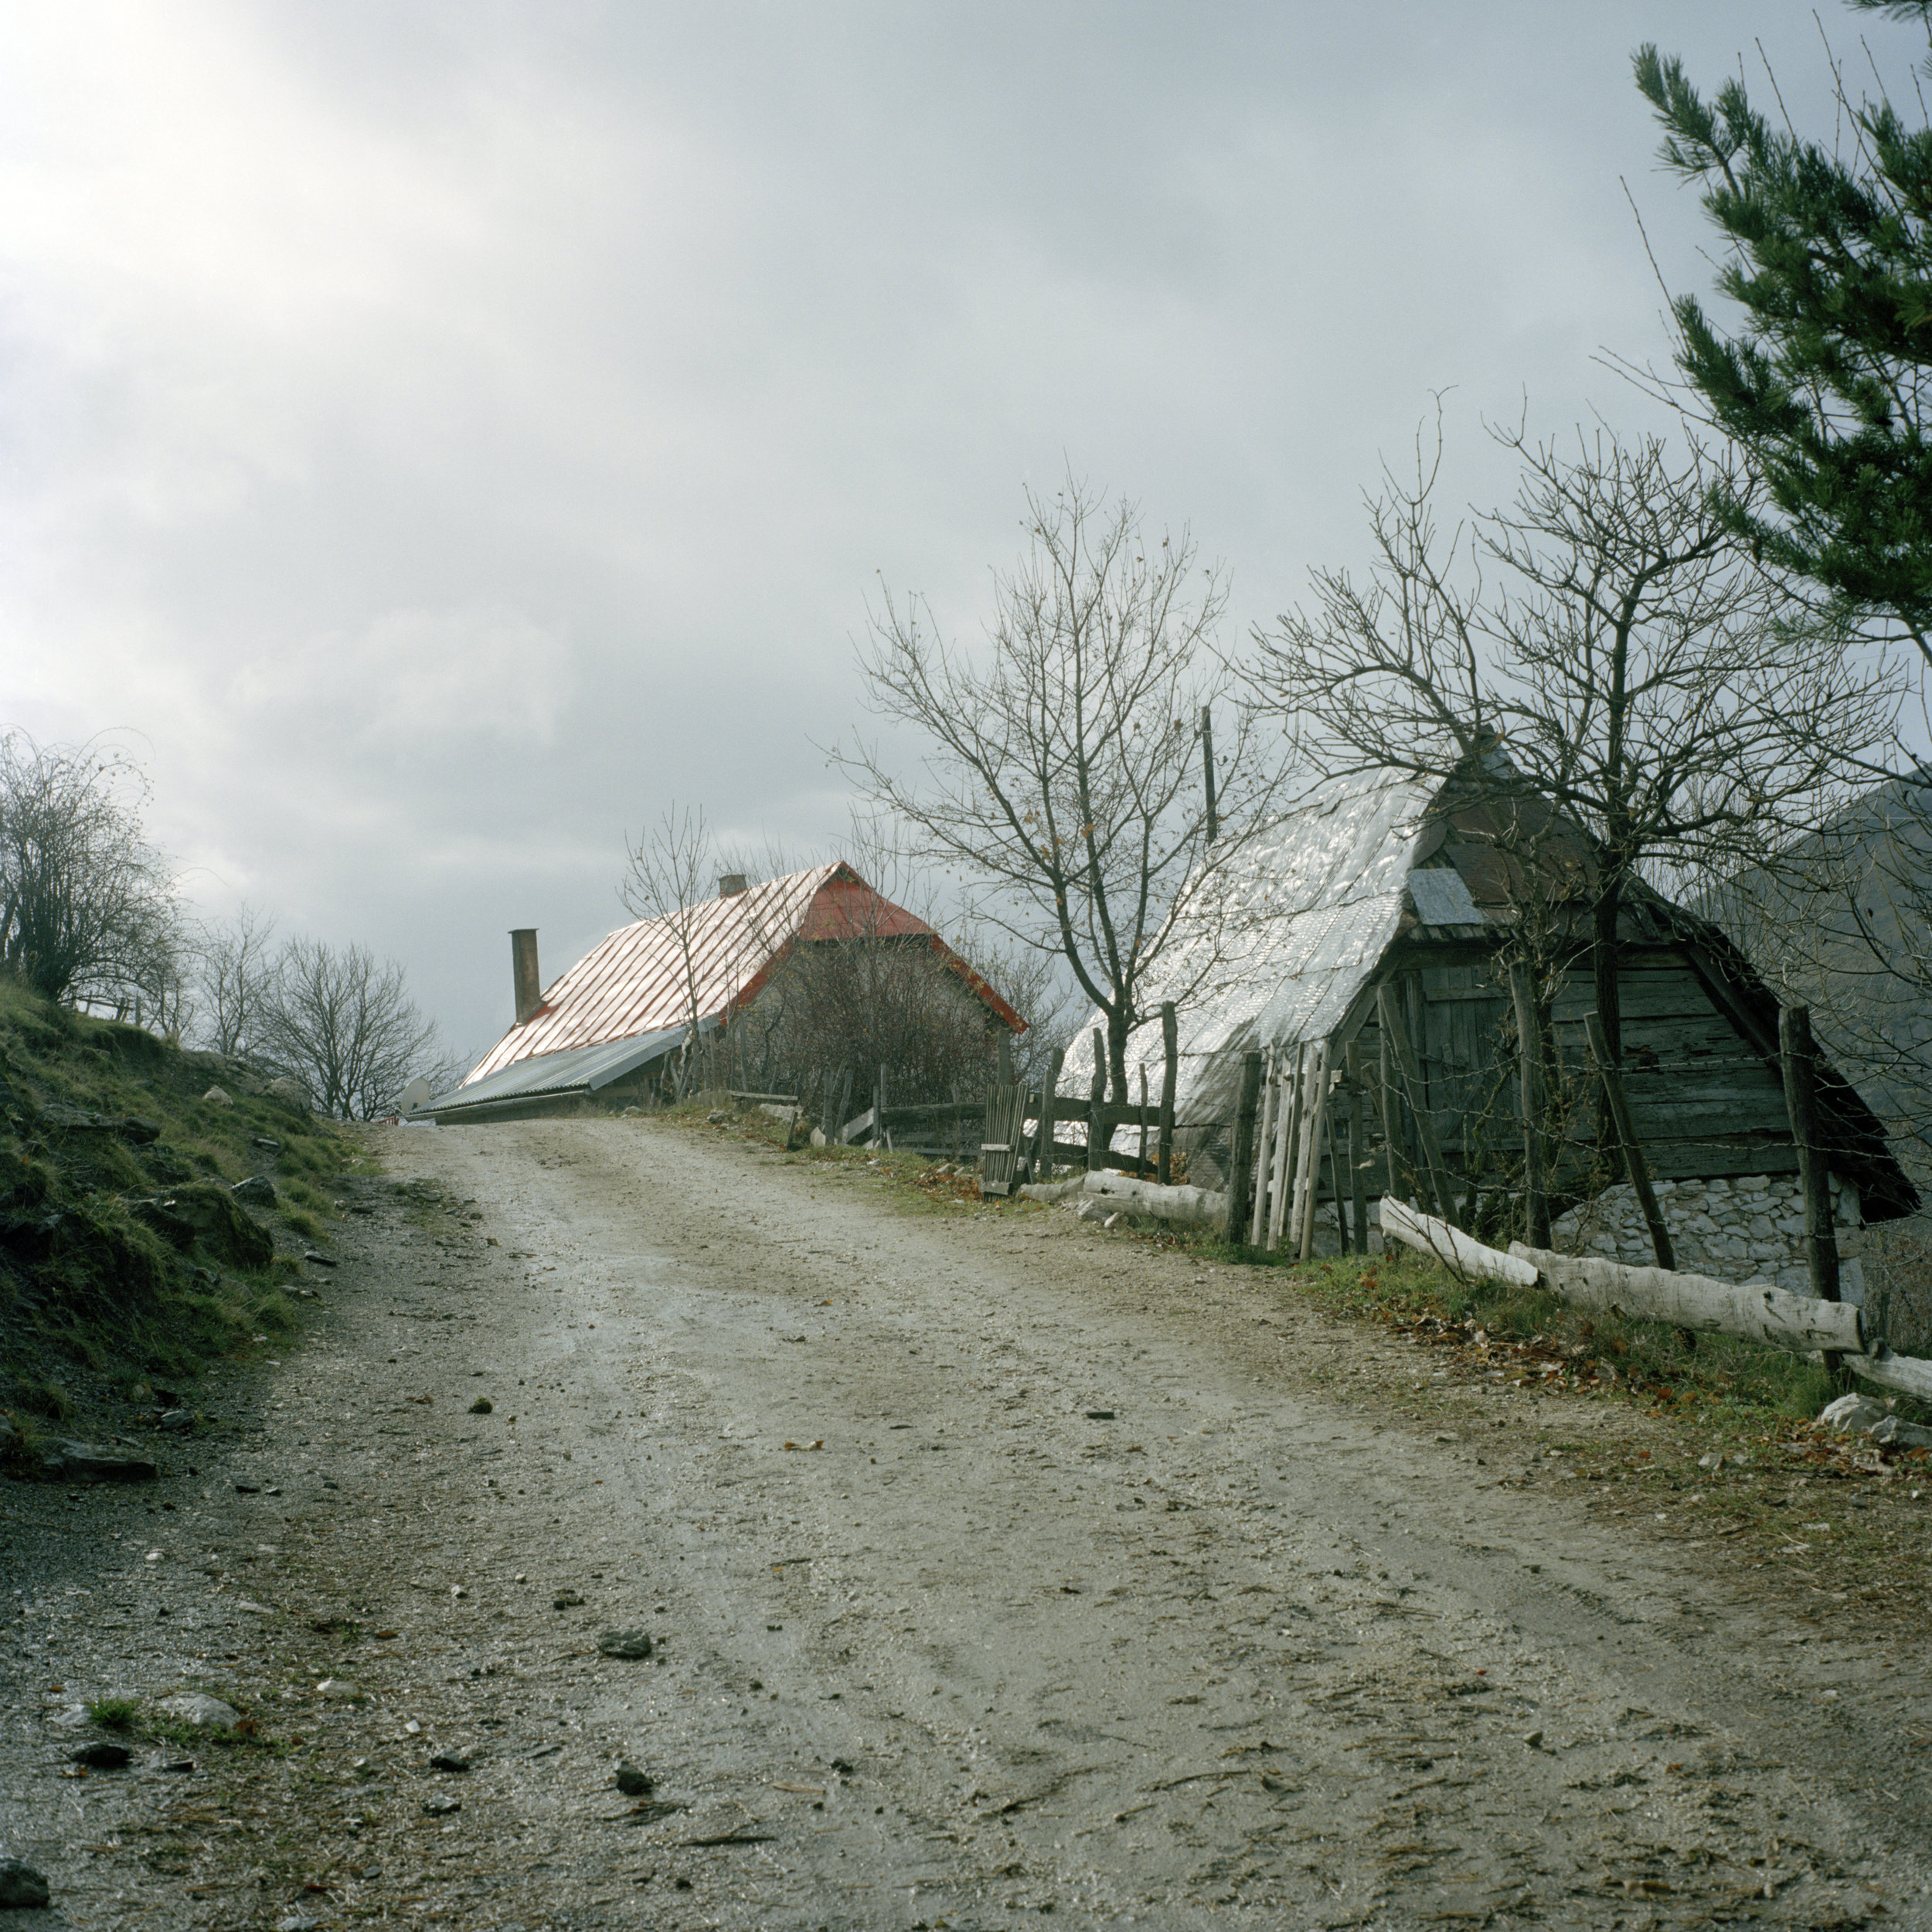 Bosnia and Herzegovina, Bozanovici, October 2010. Ratko Mladić's home village of Bozanovici, about 40 km south of Sarajevo. He was born here on March 12, 1942 as one of three kids in a family of a partisan and a housewife.